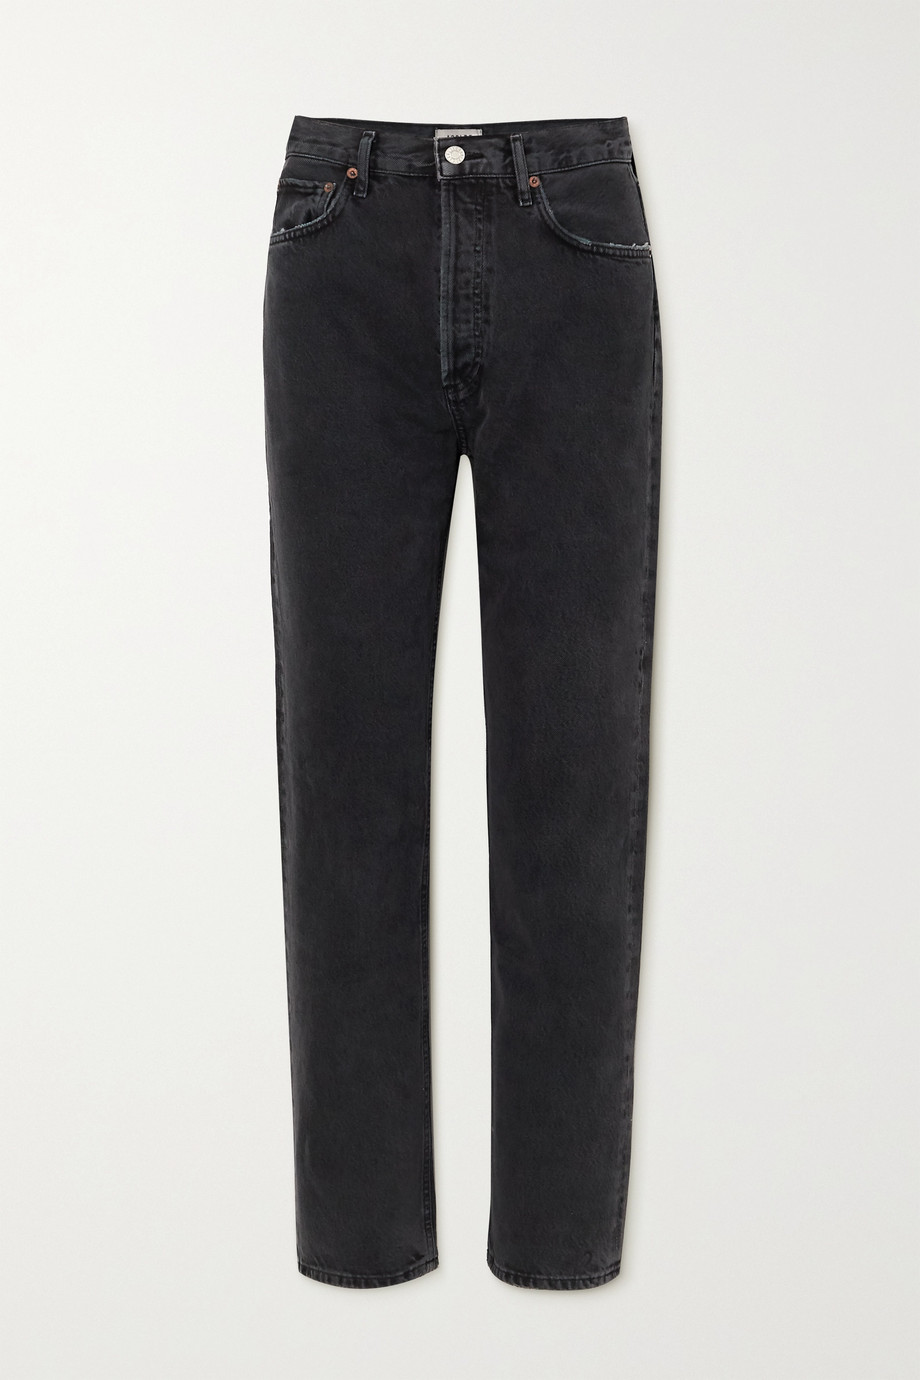 AGOLDE + NET SUSTAIN '90s organic high-rise straight-leg jeans